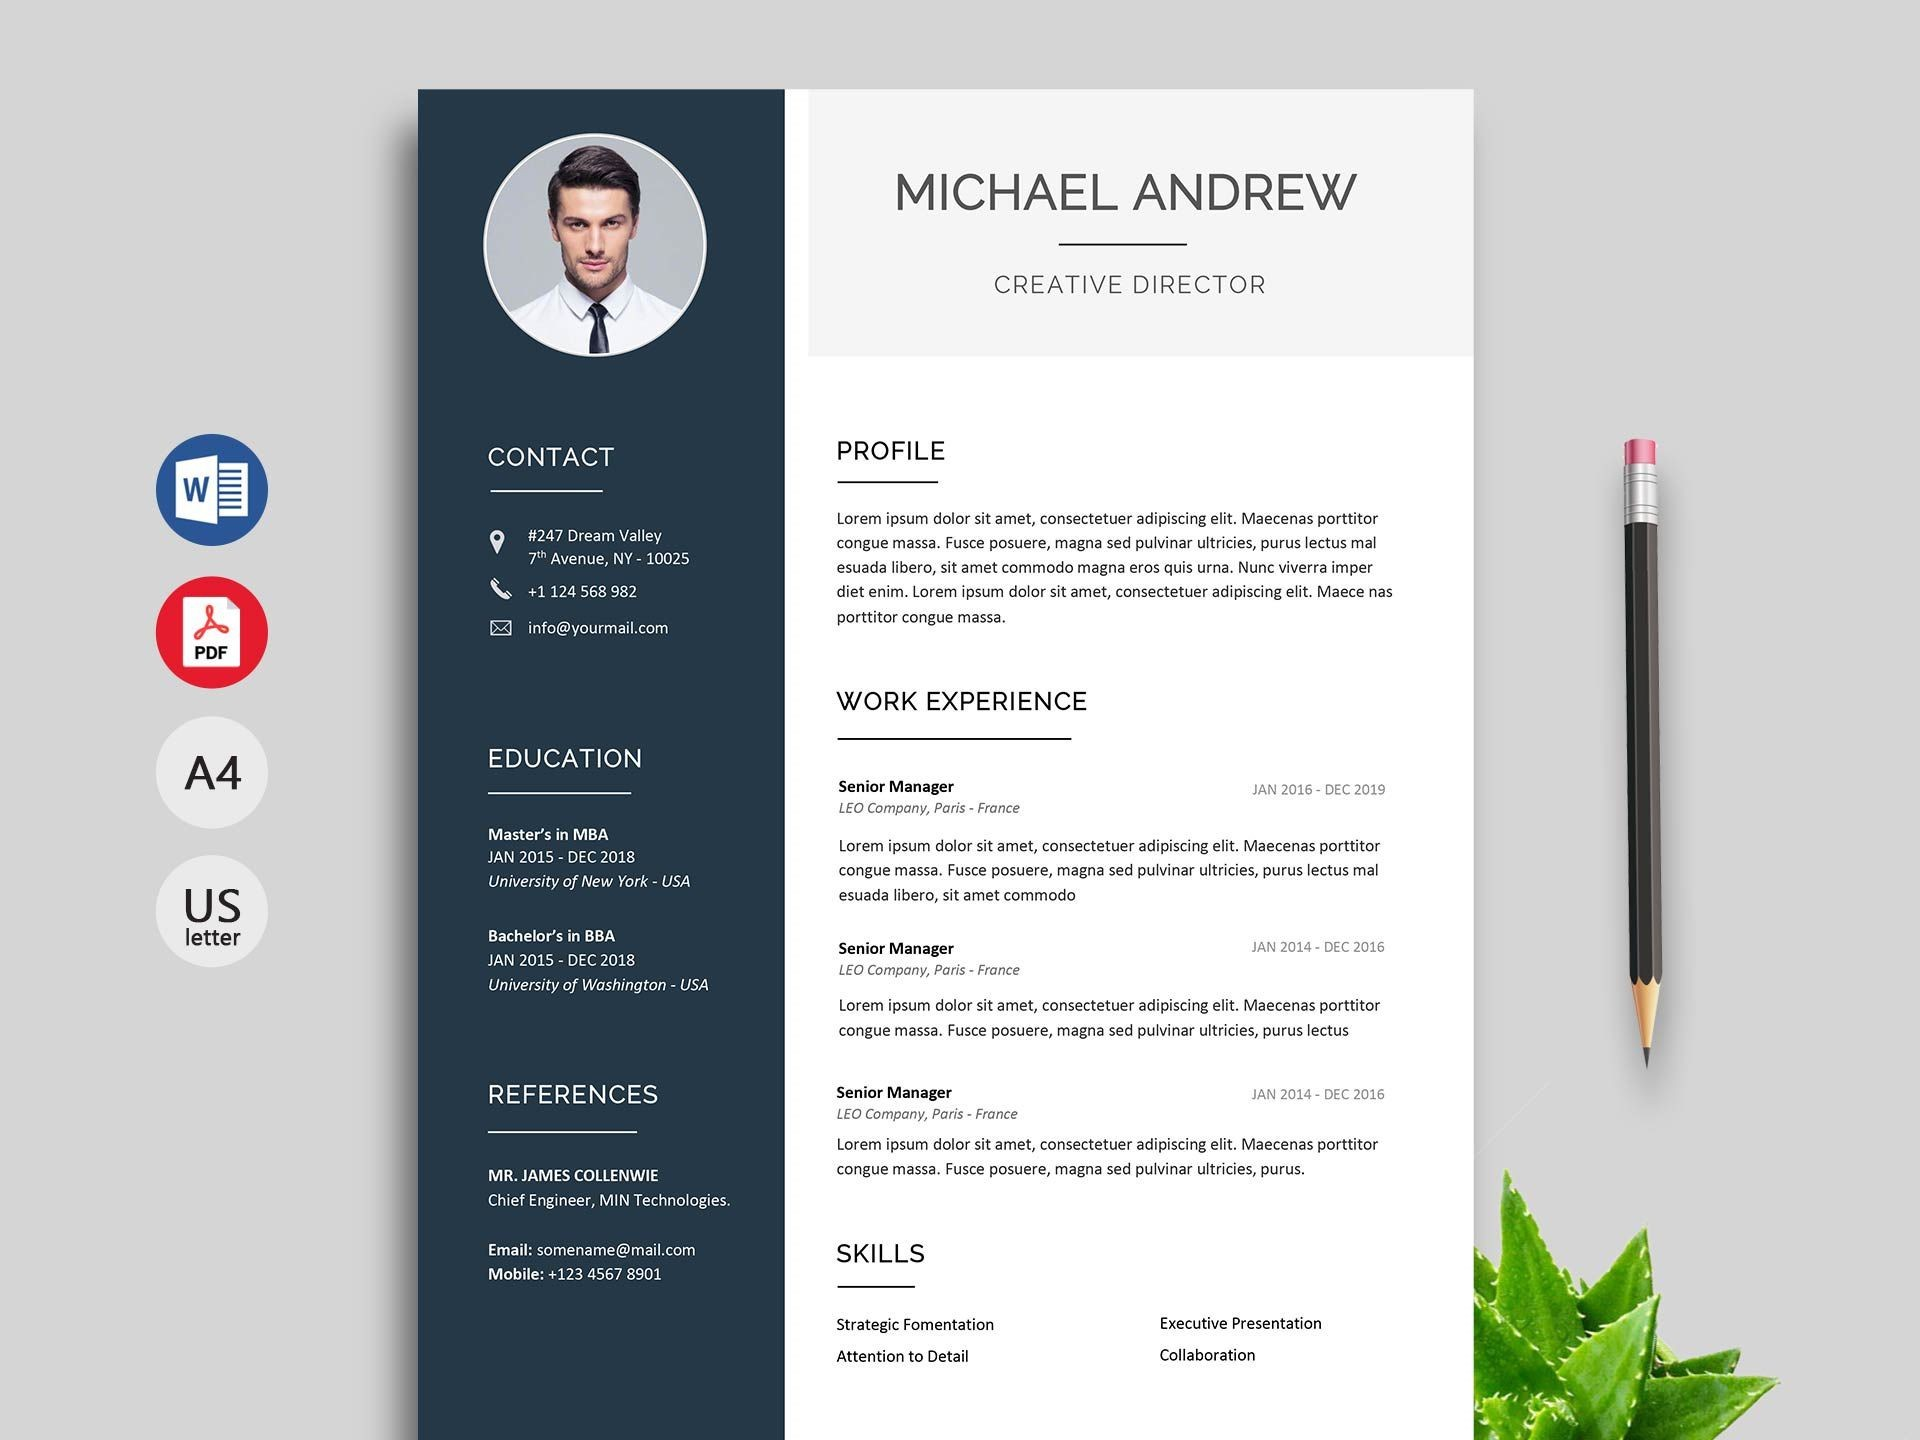 007 Unique Professional Resume Template Word Free Download Idea  Cv 2020 With Photo1920